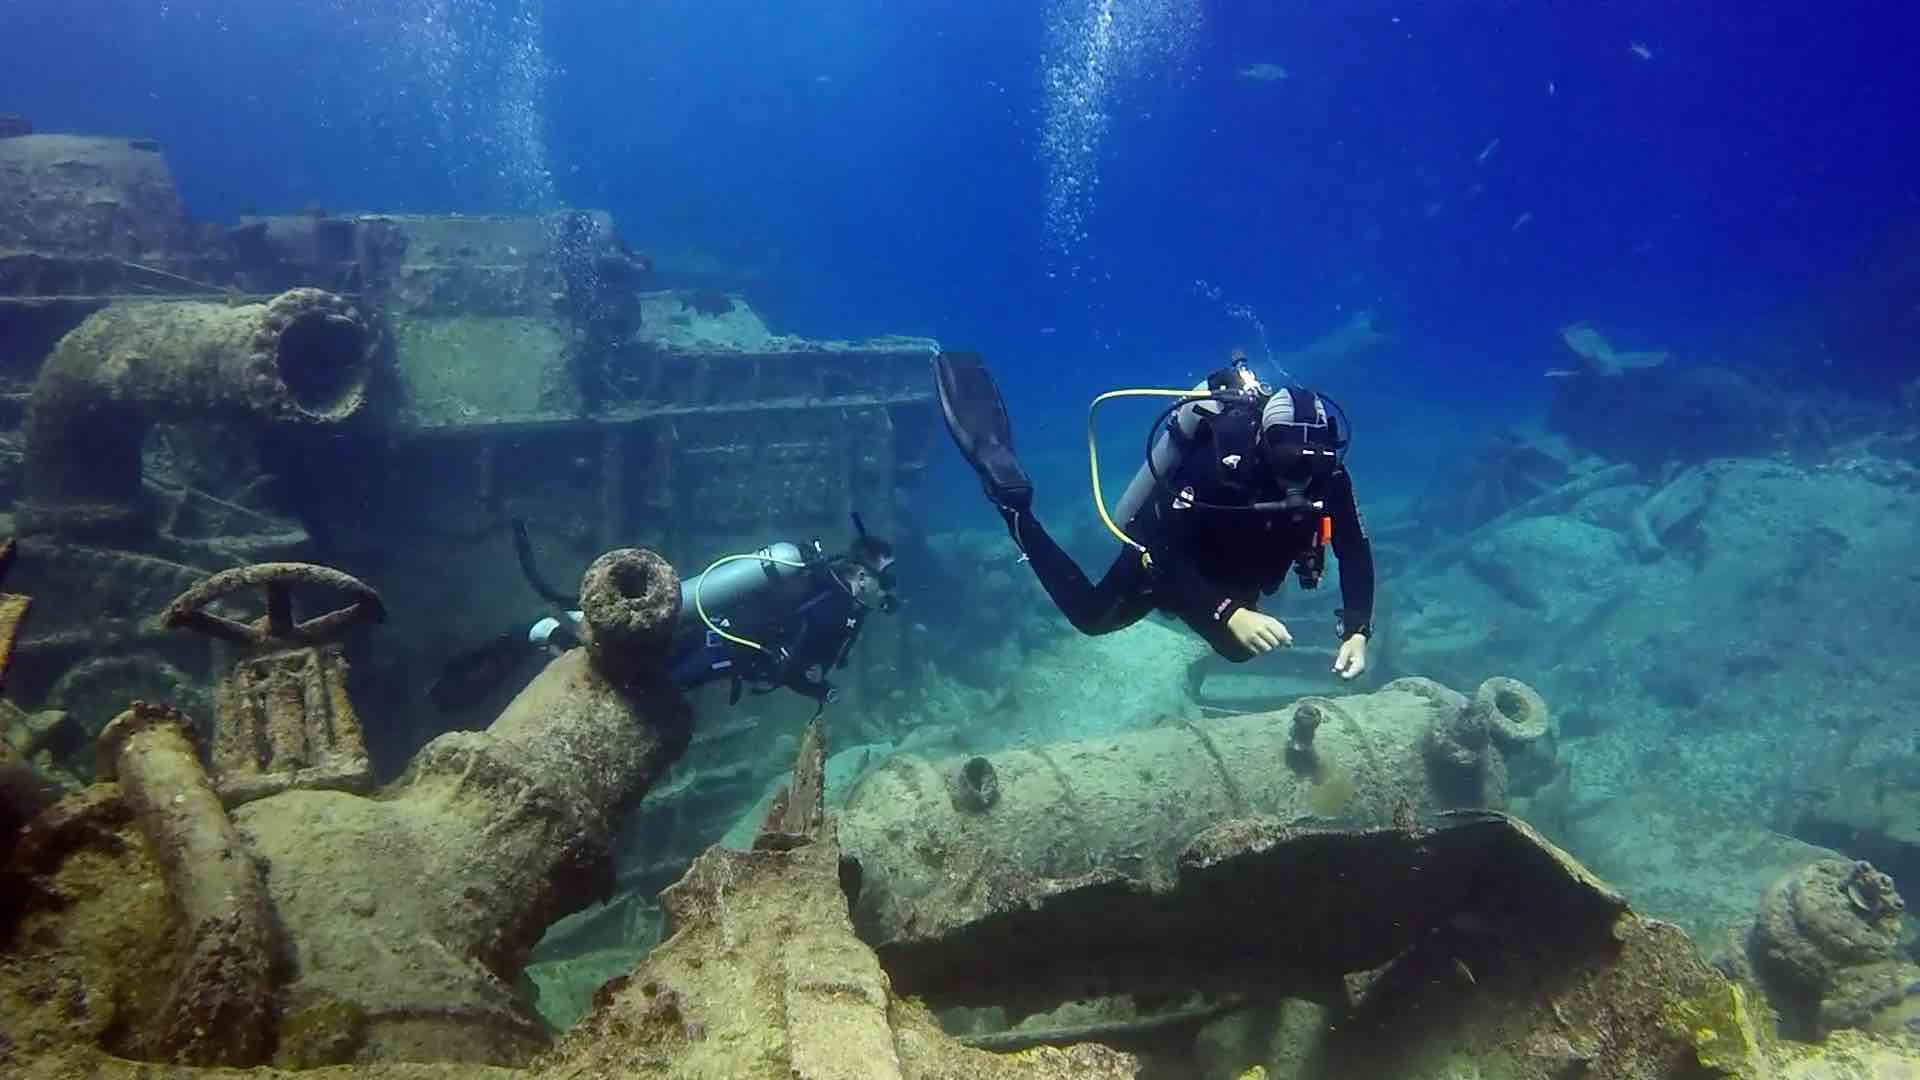 Learn to dive in the caribbean - shipwreck